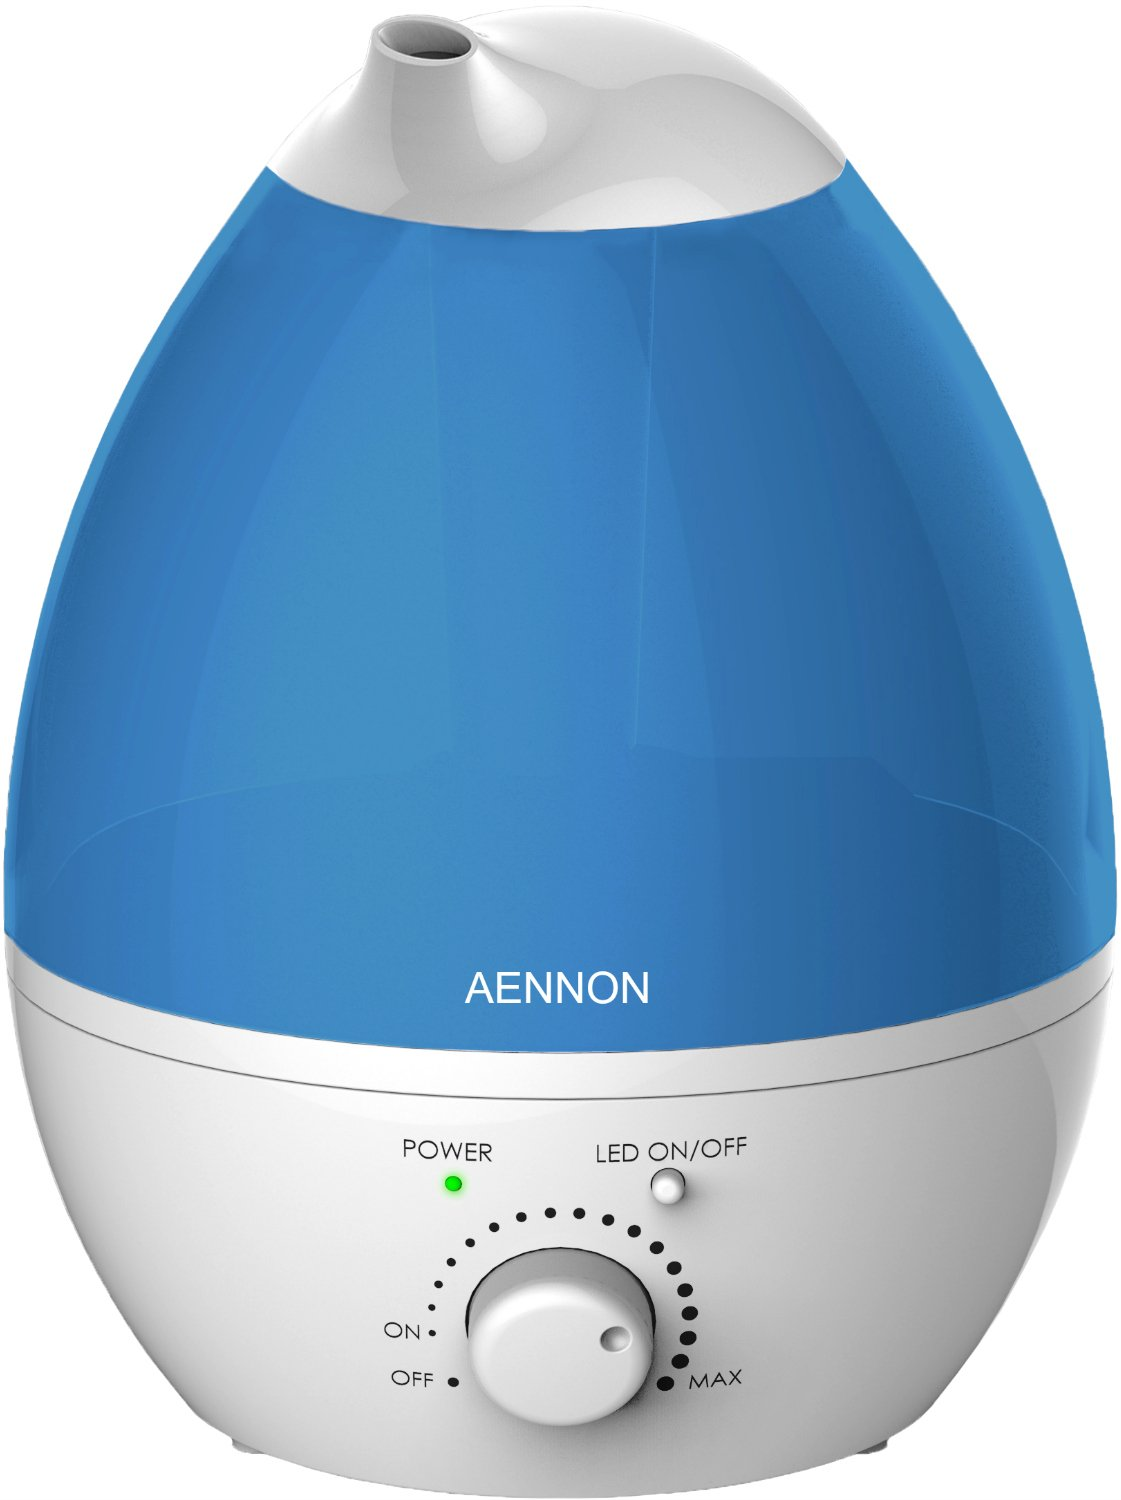 Cool Mist Ultrasonic Humidifier, Whisper-Quiet With 7 Color LED Lights